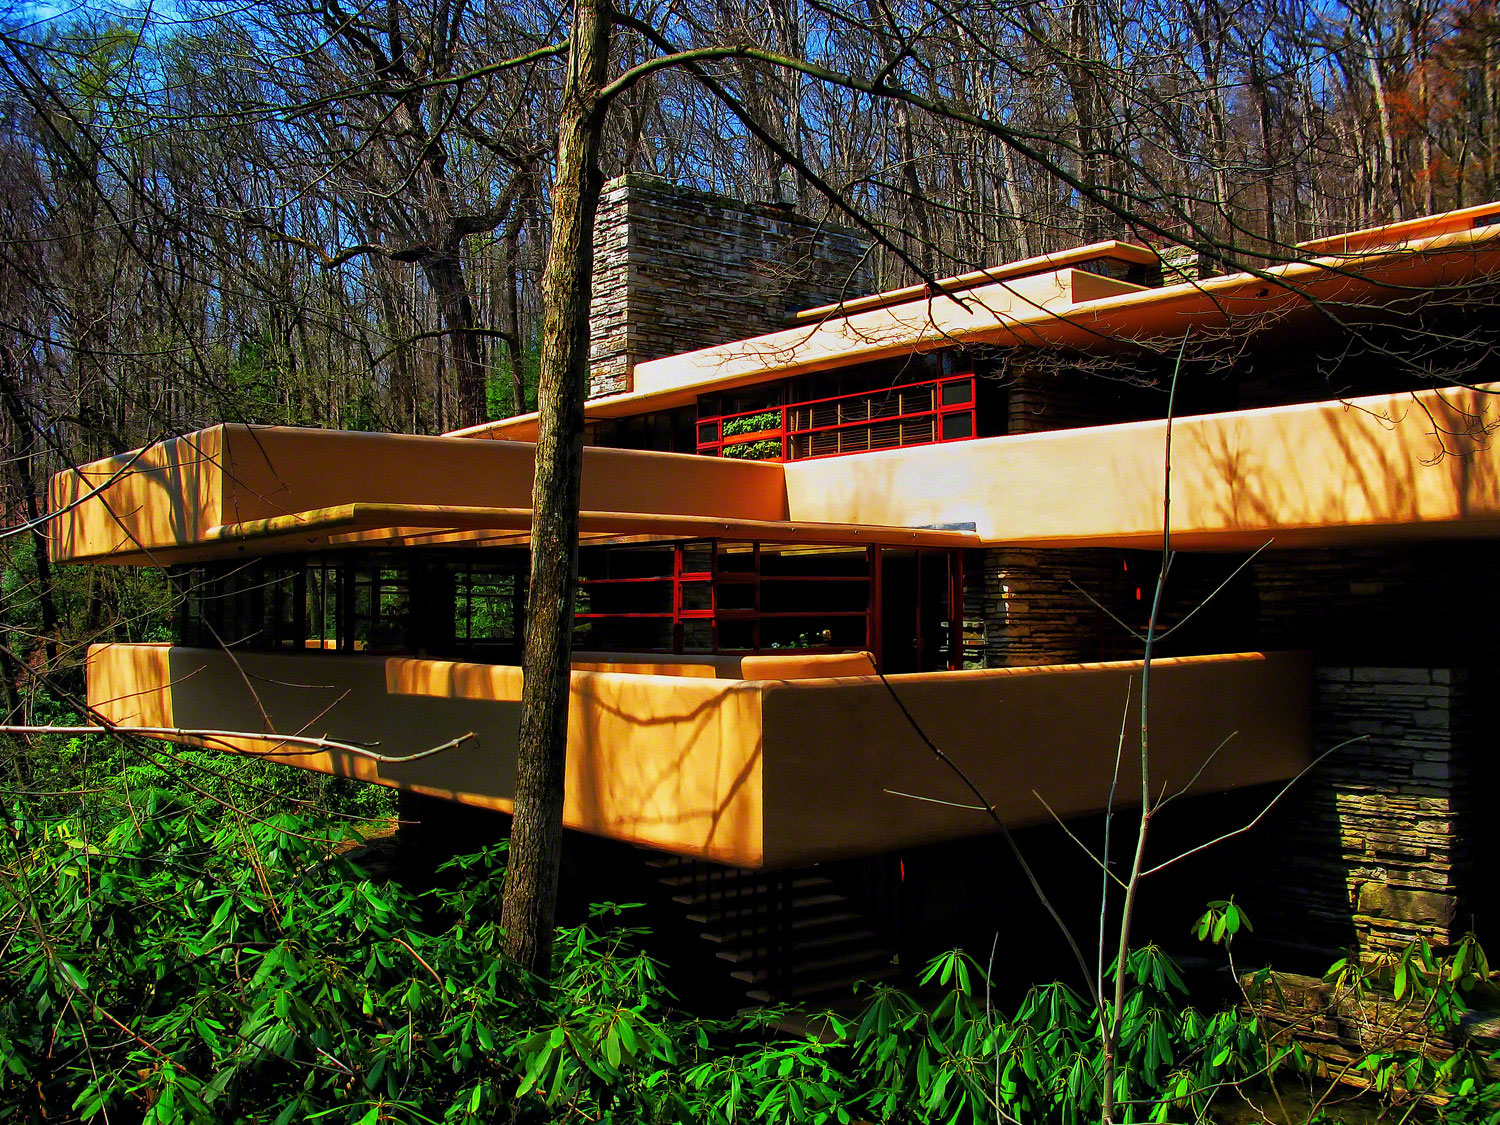 A place in the Laurel Highlands where nature and man blend in harmony.